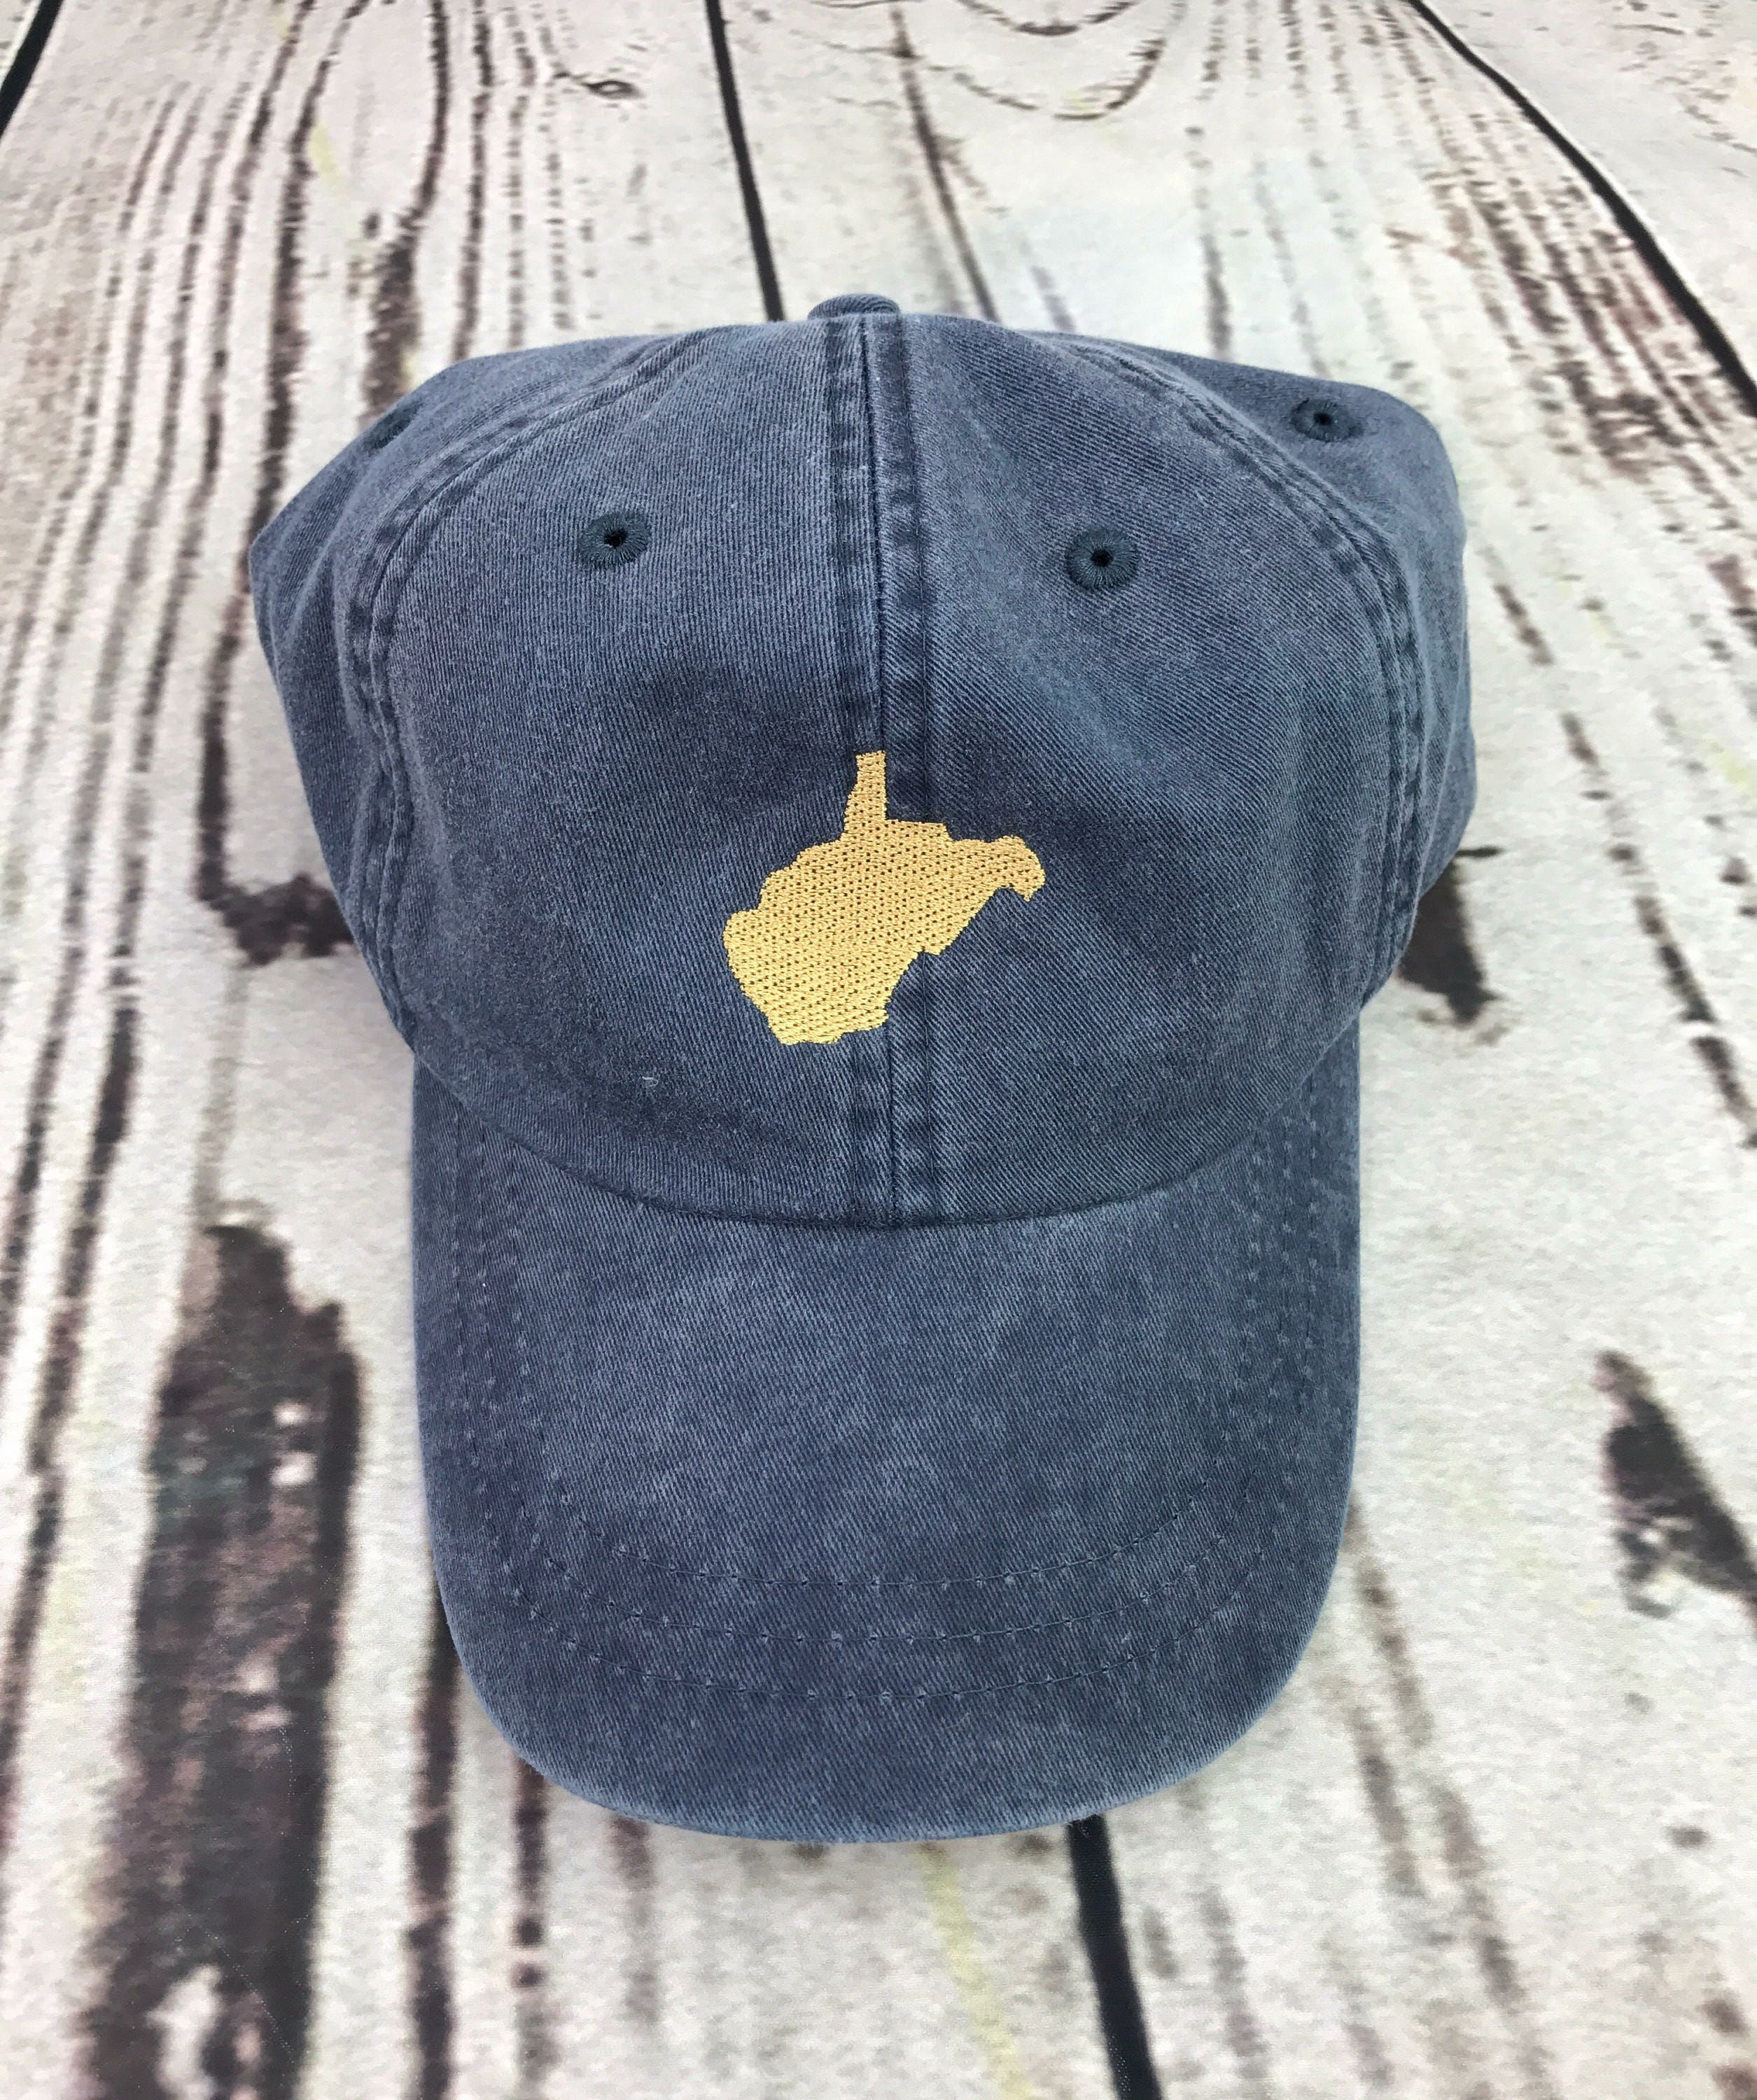 low priced 0b7bb 5eae8 coupon for virginia hats cafepress 9619b 63a1b  greece west virginia  baseball cap filled state 5d7f8 a9f39